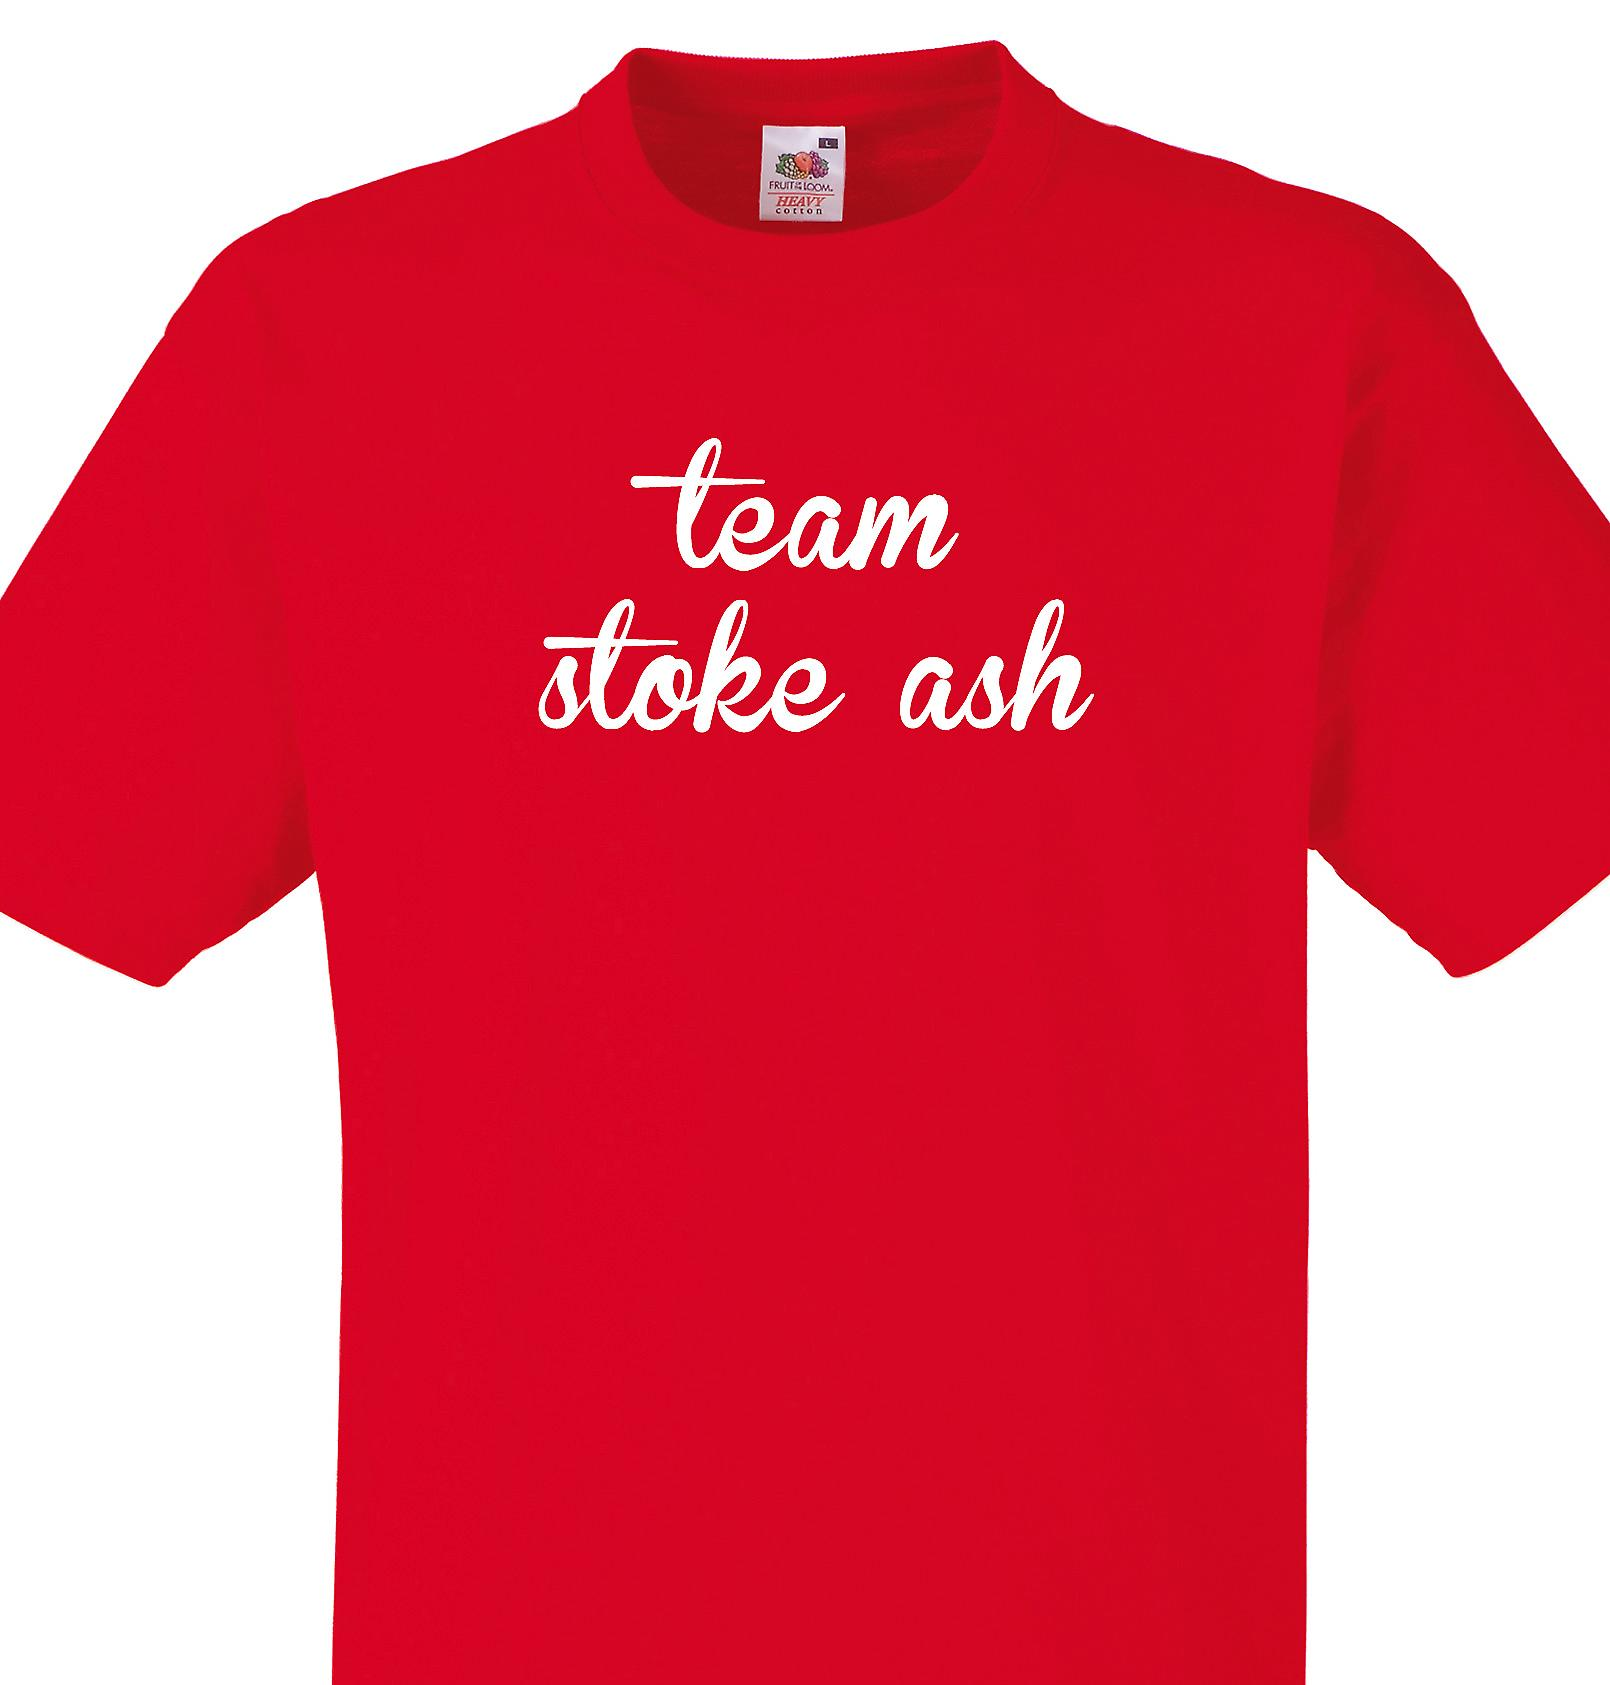 Team Stoke ash Red T shirt